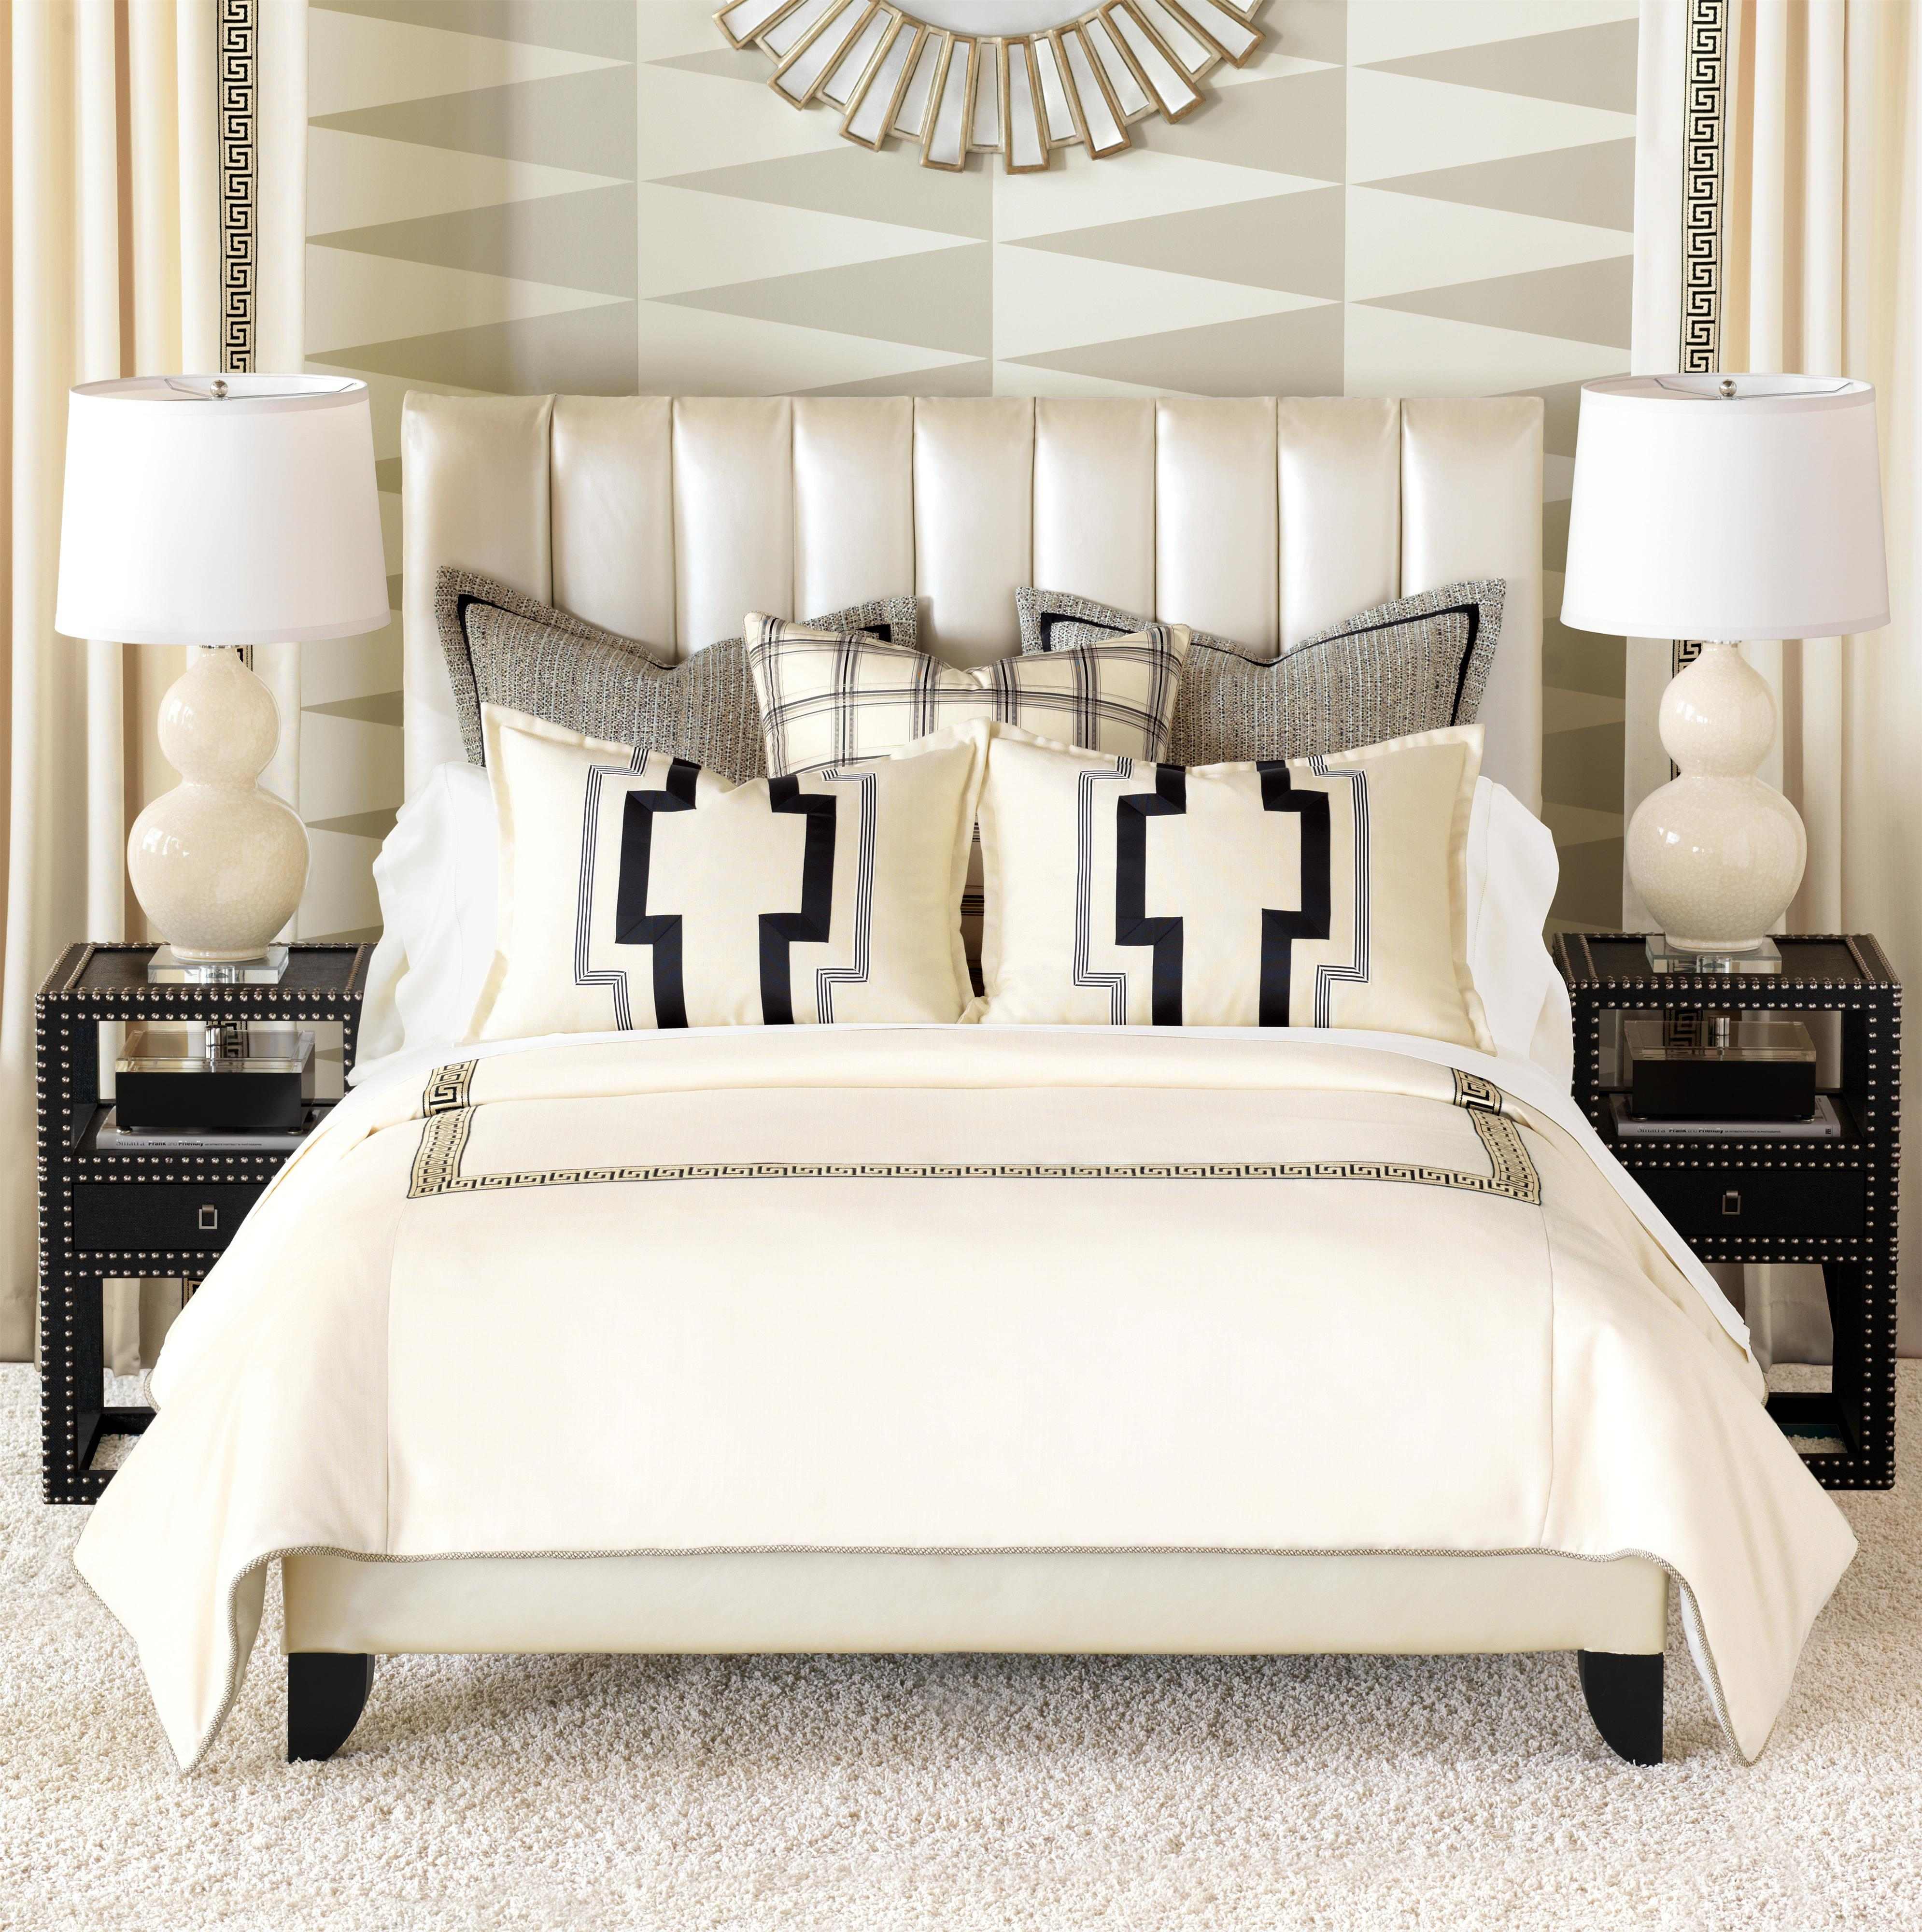 Abernathy King Button-Tufted Comforter by Eastern Accents at Michael Alan Furniture & Design